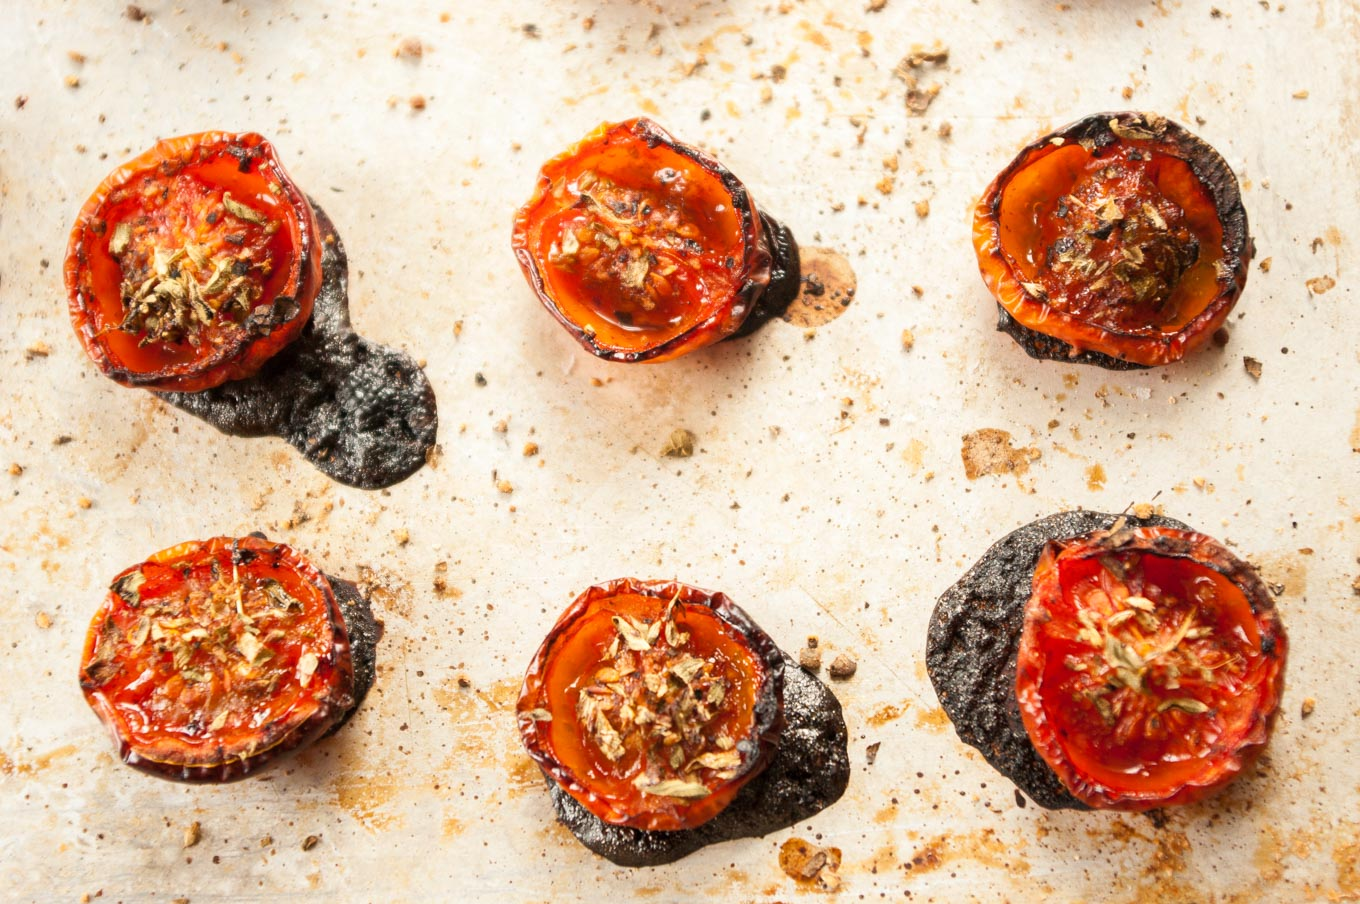 roasted tomatoes, seasoned with fruity balsamic and fragrant oregano ...